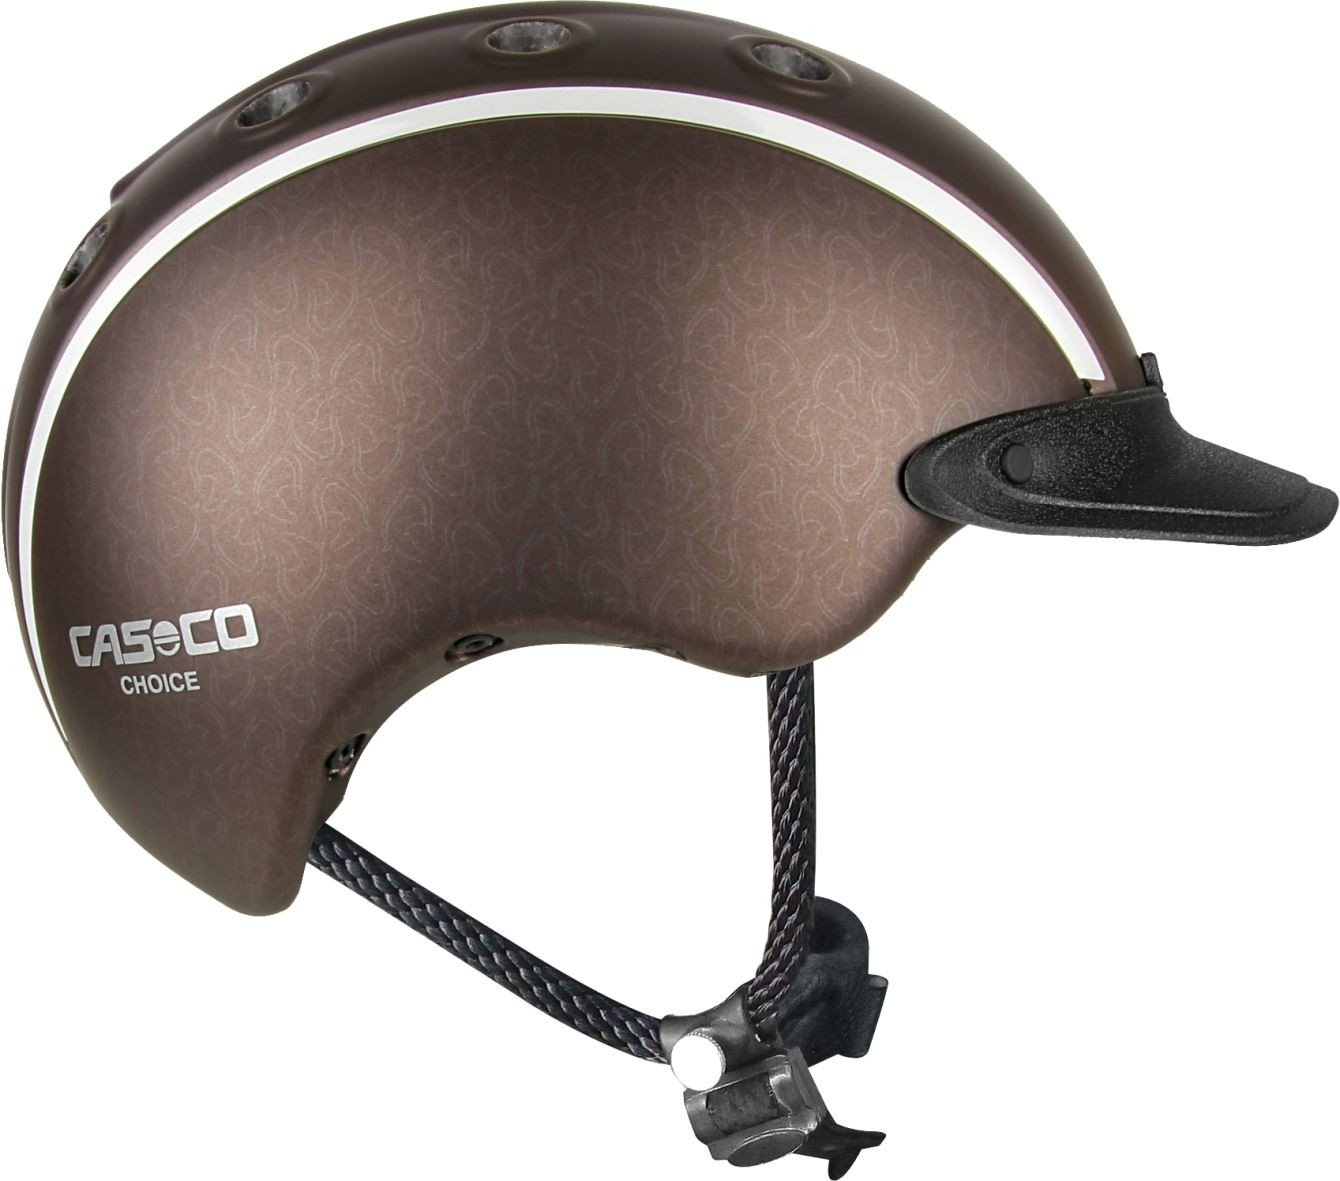 Casco Reithelm für Kinder Choice